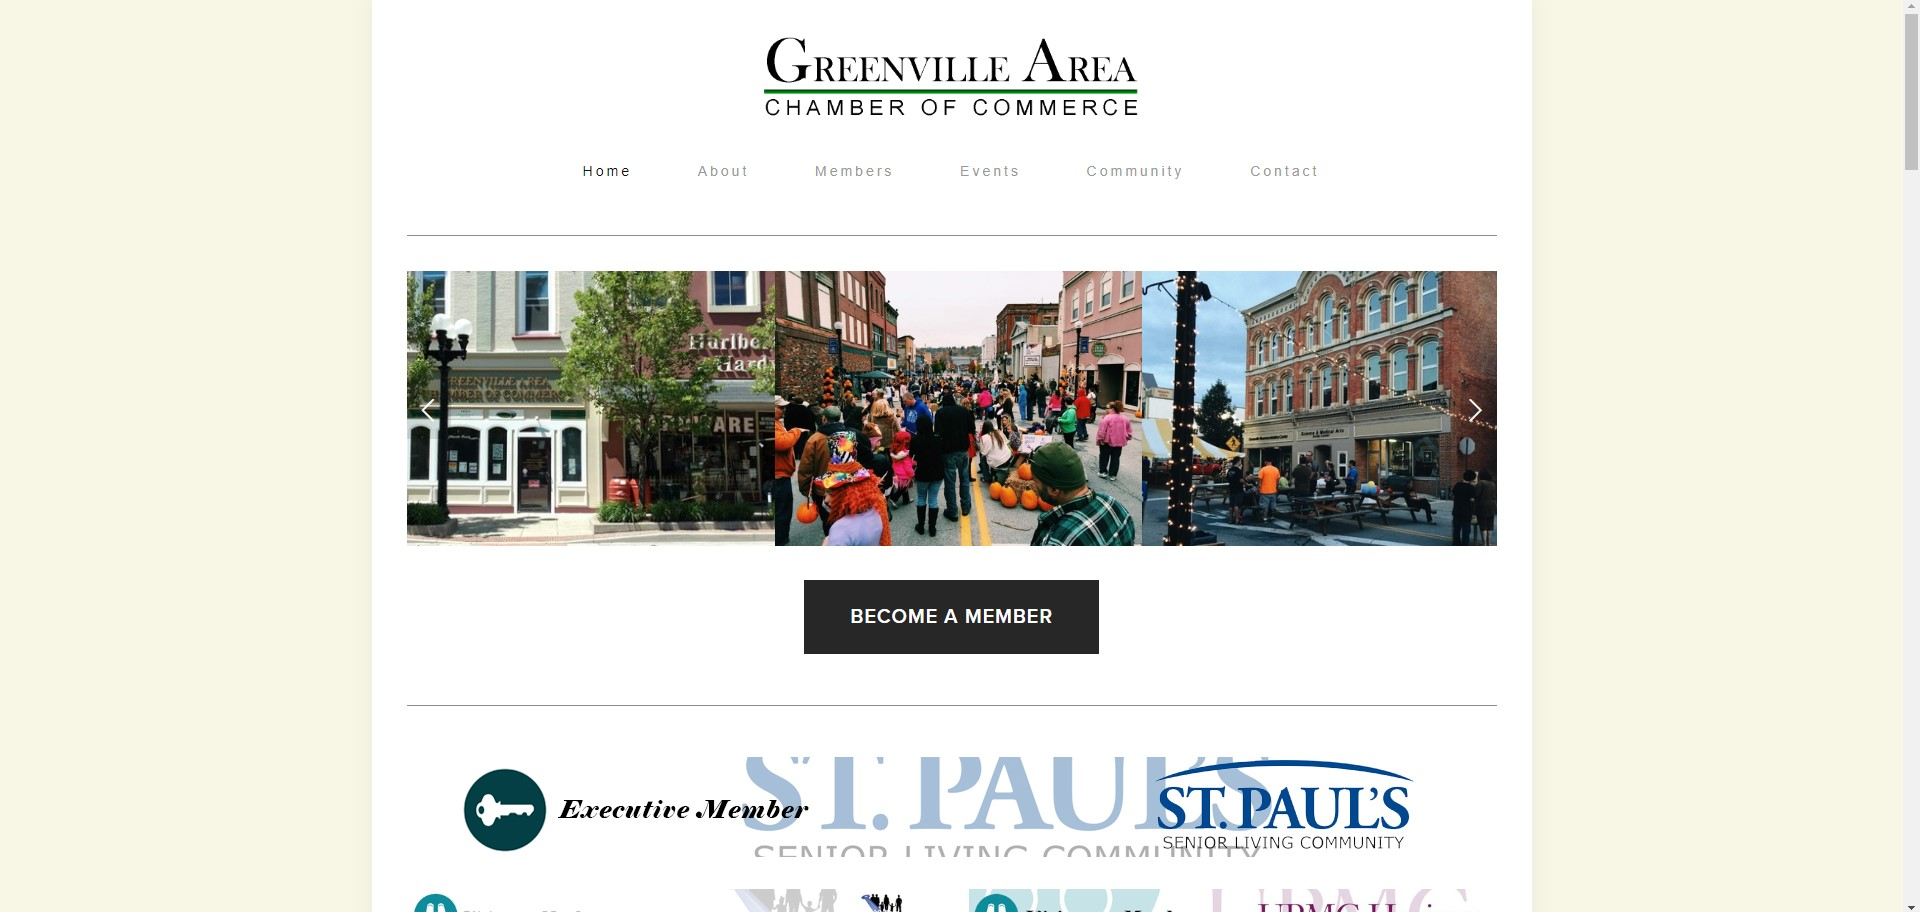 greenville area chamber of commerce.jpg